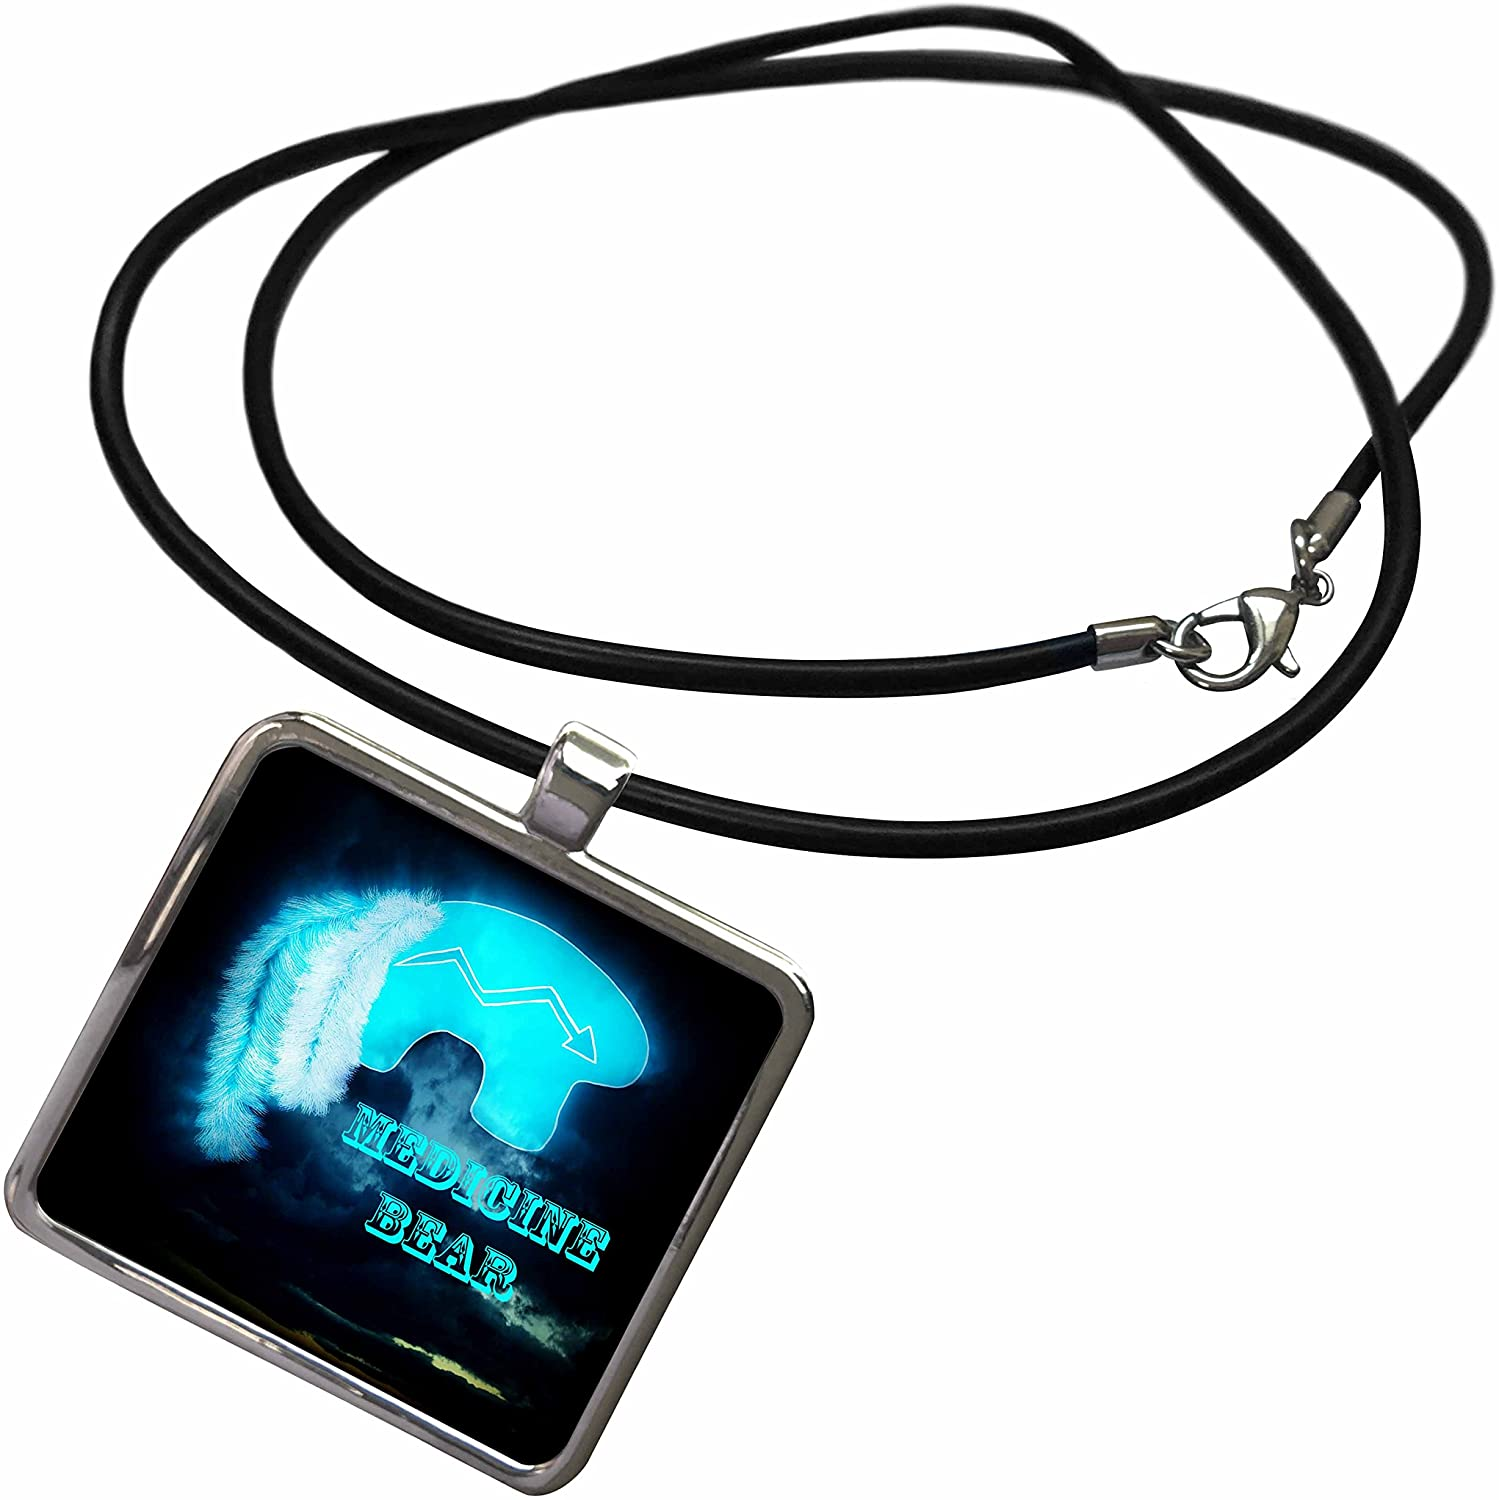 3dRose WhiteOaks Photography and Artwork - Native American - Zuni Medicine Bear is an Image I Created Representing Healing - Necklace with Rectangle Pendant (ncl_218809)